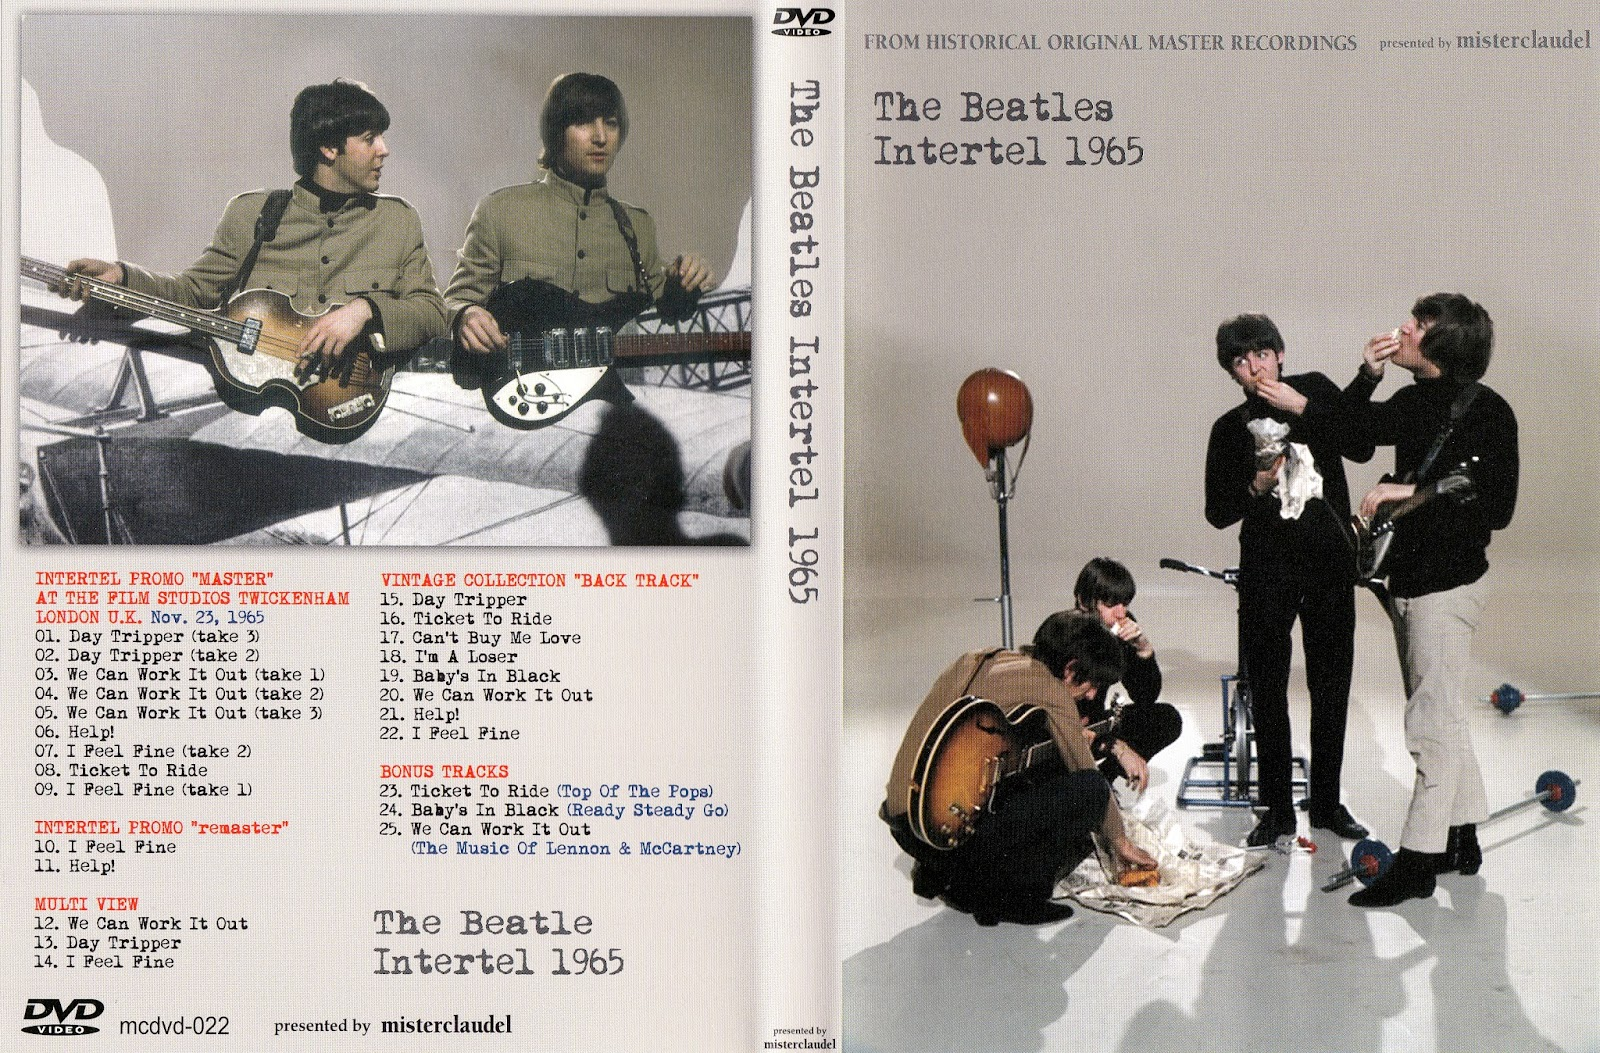 The Beatles - Intertel 1965 DVD